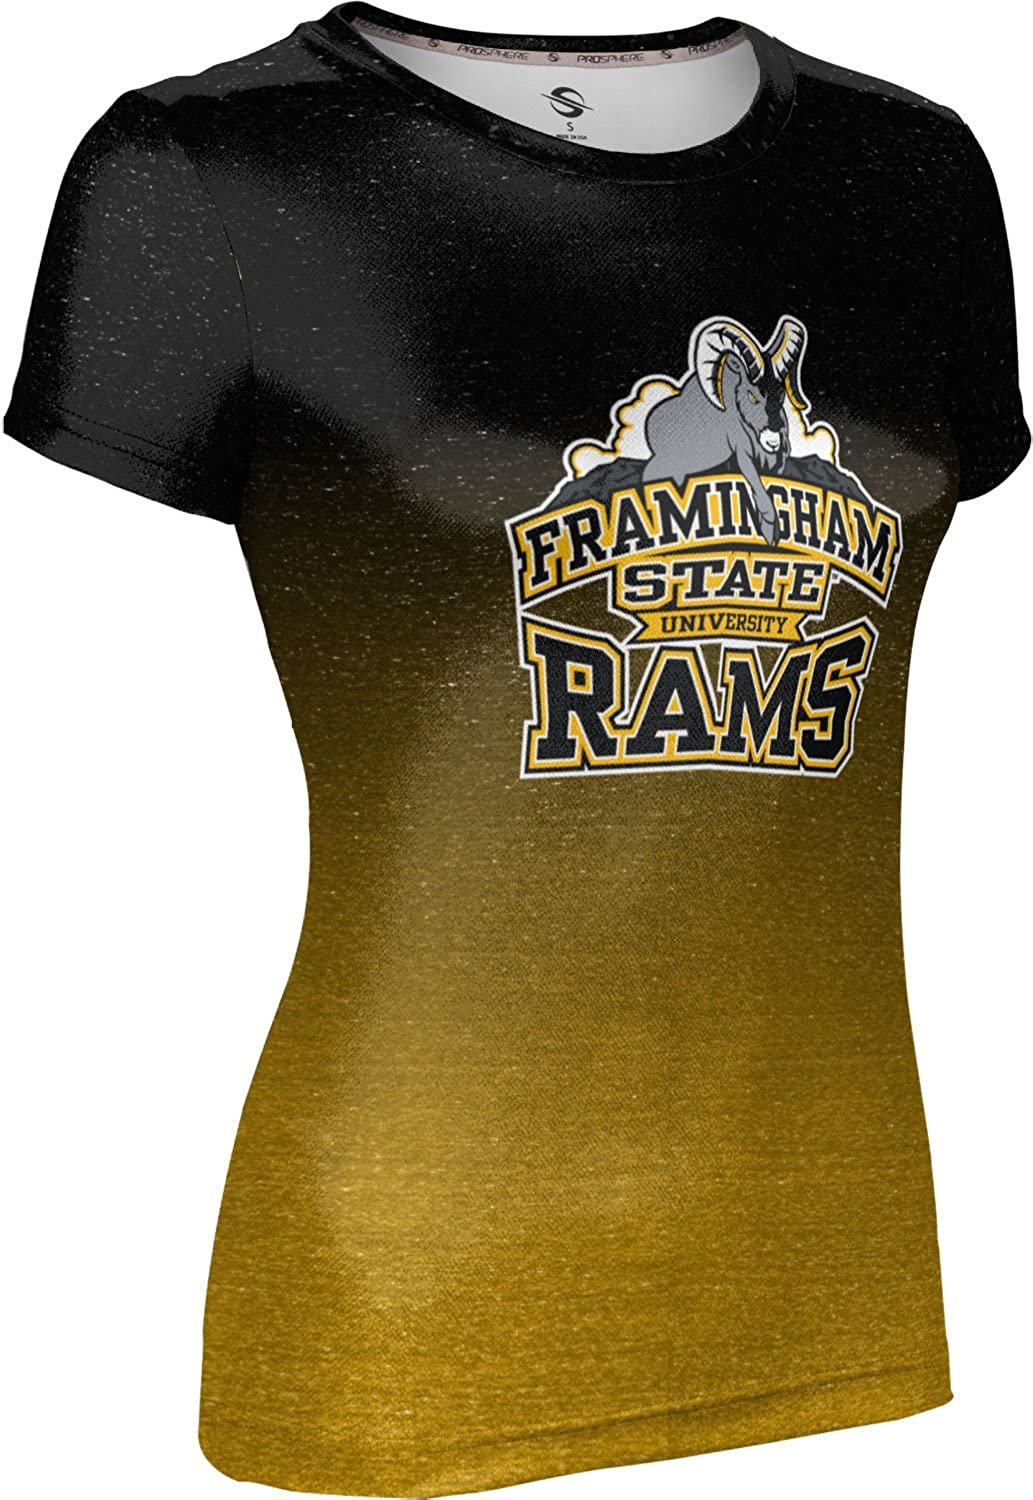 ProSphere Framingham State University Girls Performance T-Shirt Ombre